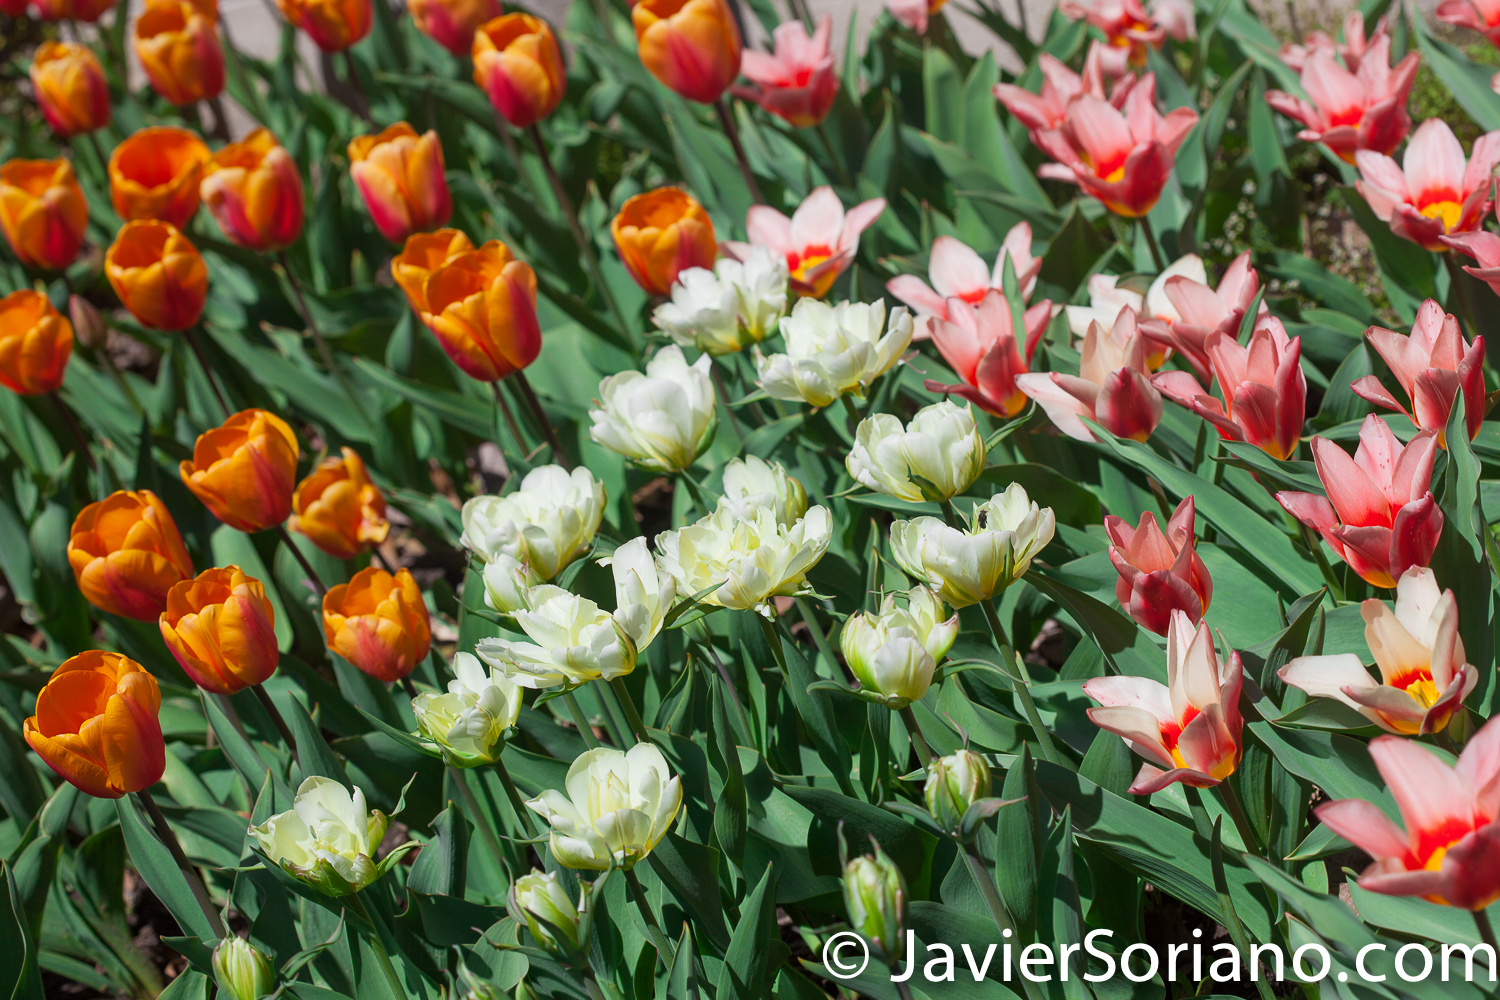 4/20/2018. New York City - Tulips. Brooklyn Botanic Garden. Abril 20, 2018. Ciudad de Nueva York - Tulipanes. Jardín Botánico de Brooklyn. Photo by Javier Soriano / www.JavierSoriano.com